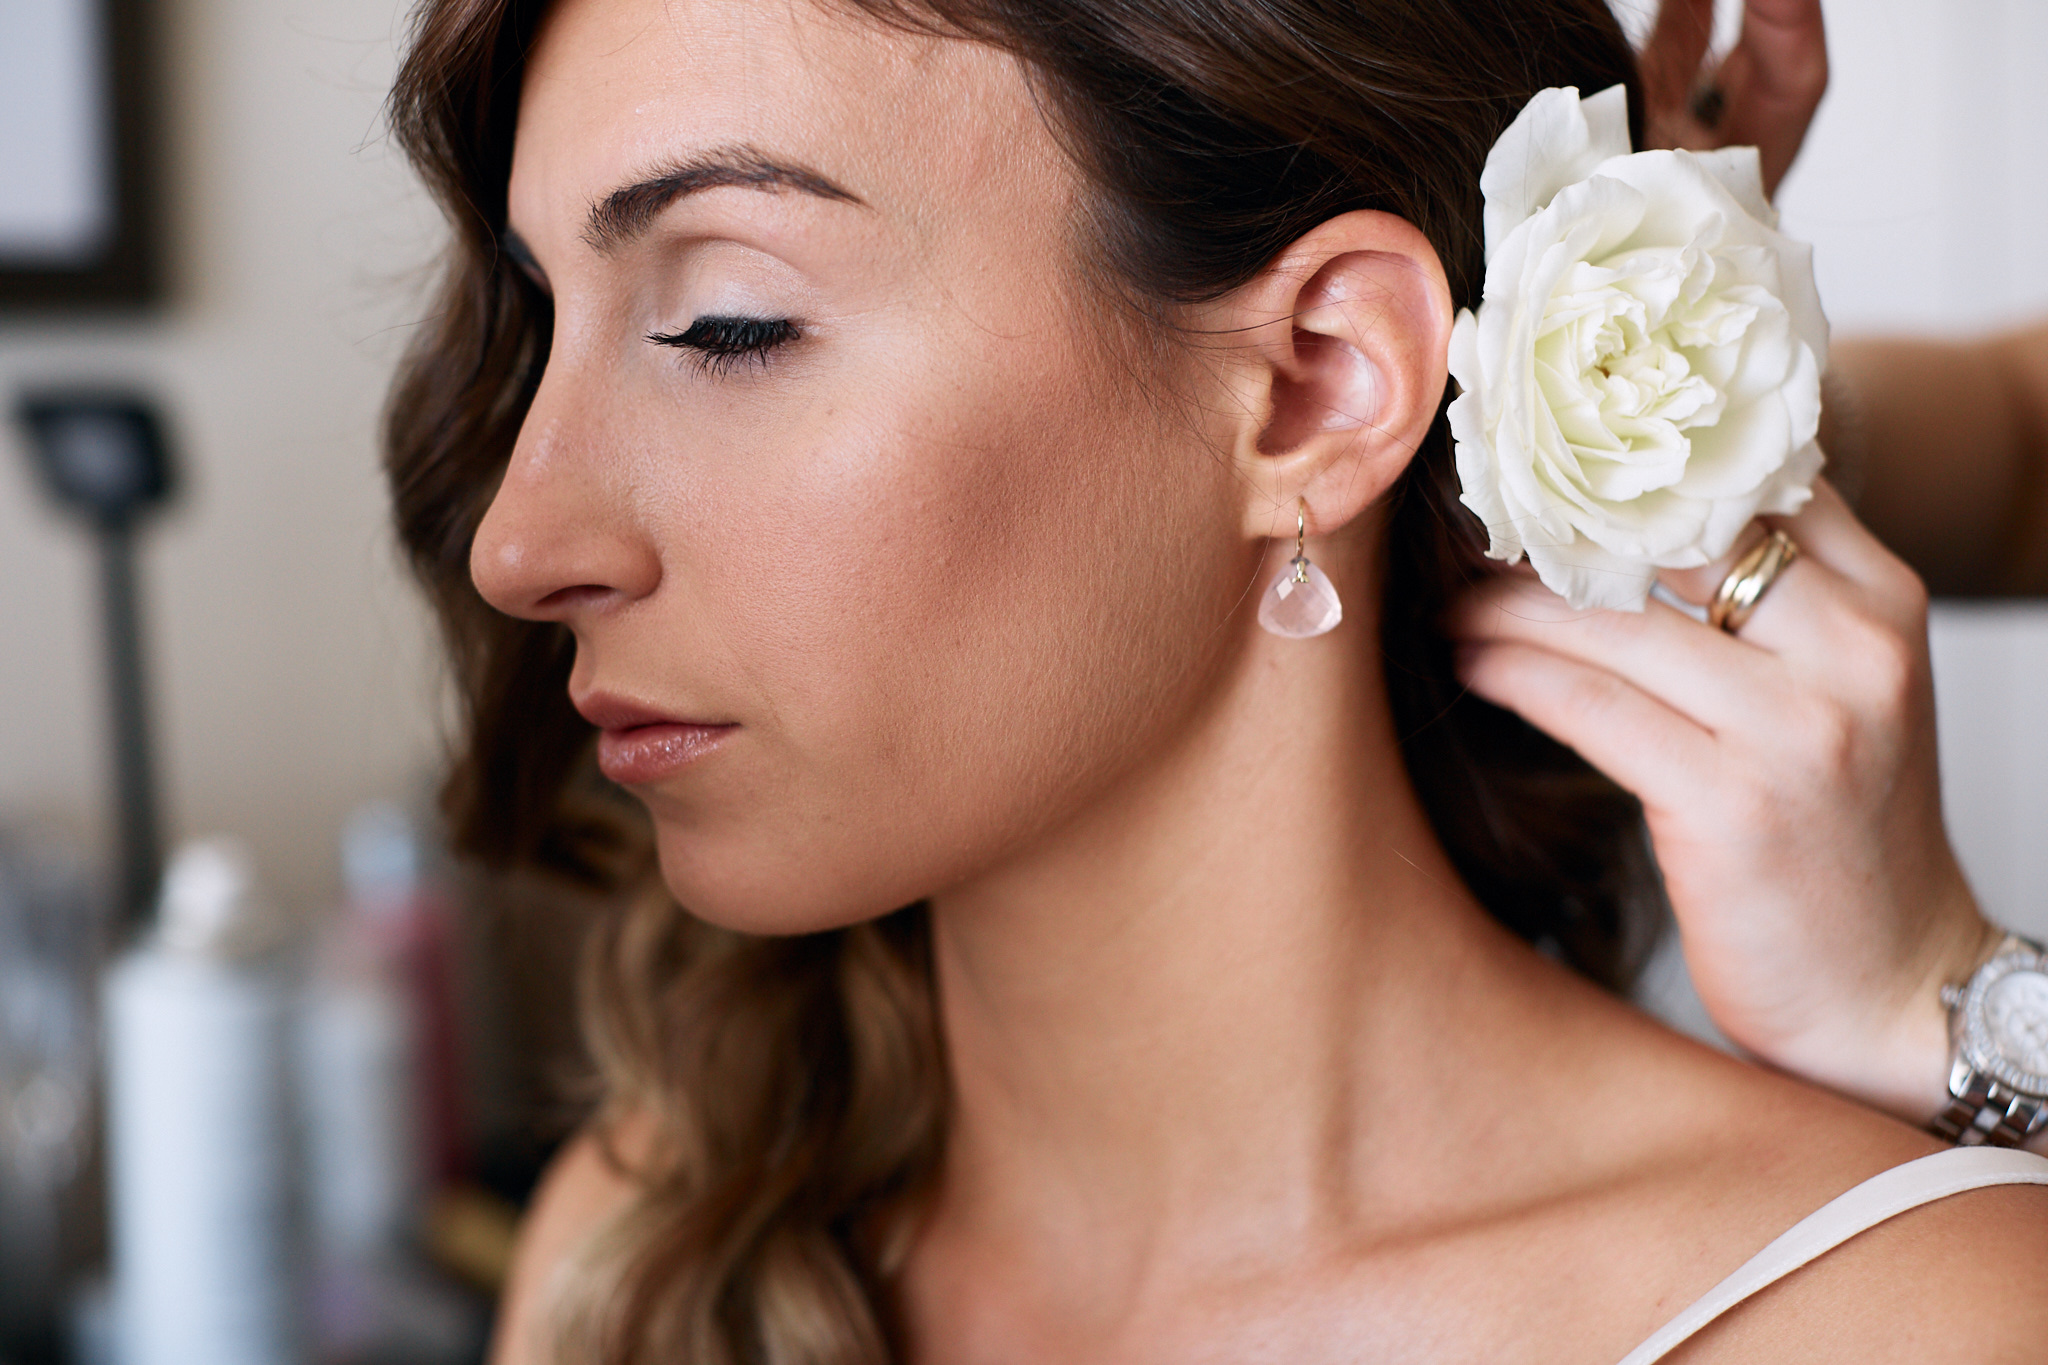 bride earing and flower in hair